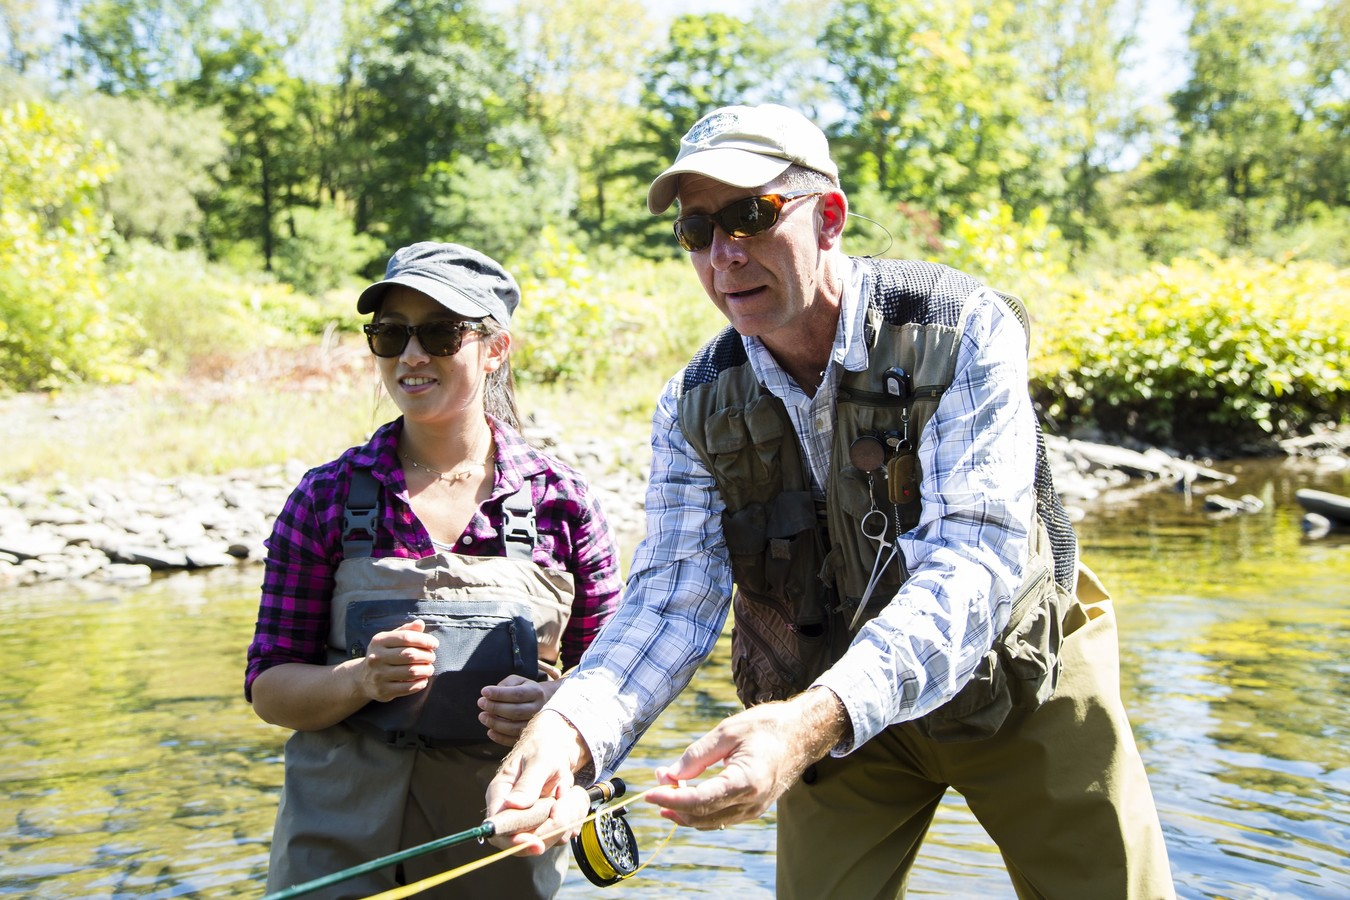 Catskills fly fishing guide teaching woman